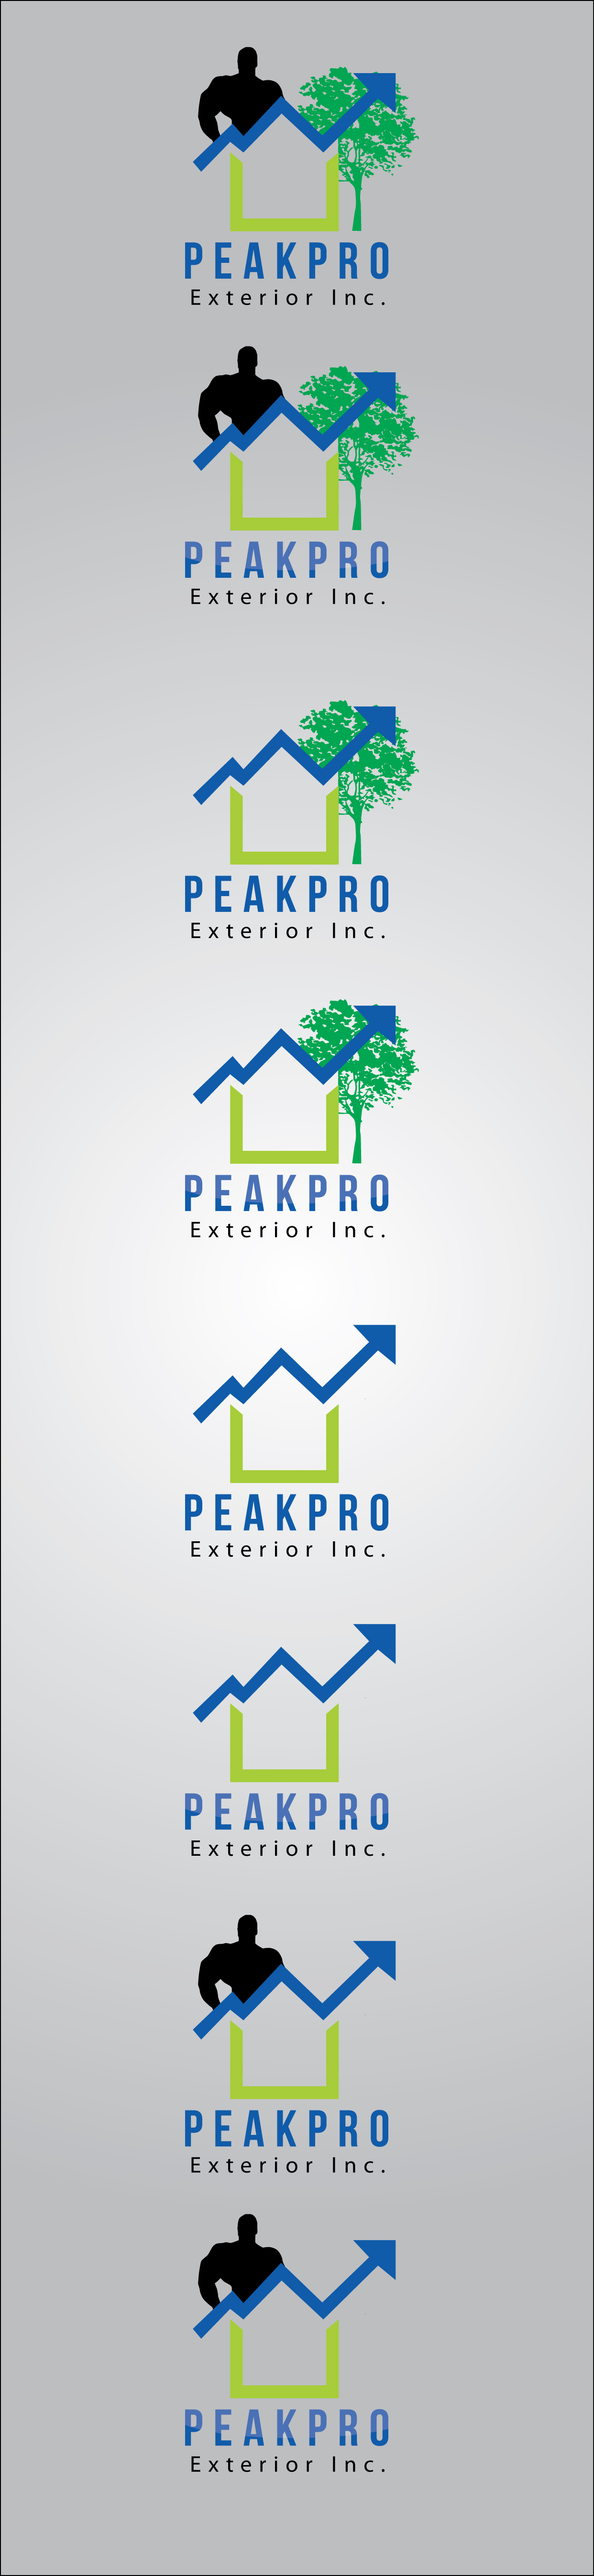 Logo Design by mediaproductionart - Entry No. 81 in the Logo Design Contest Captivating Logo Design for Peakpro Exteriors Inc..